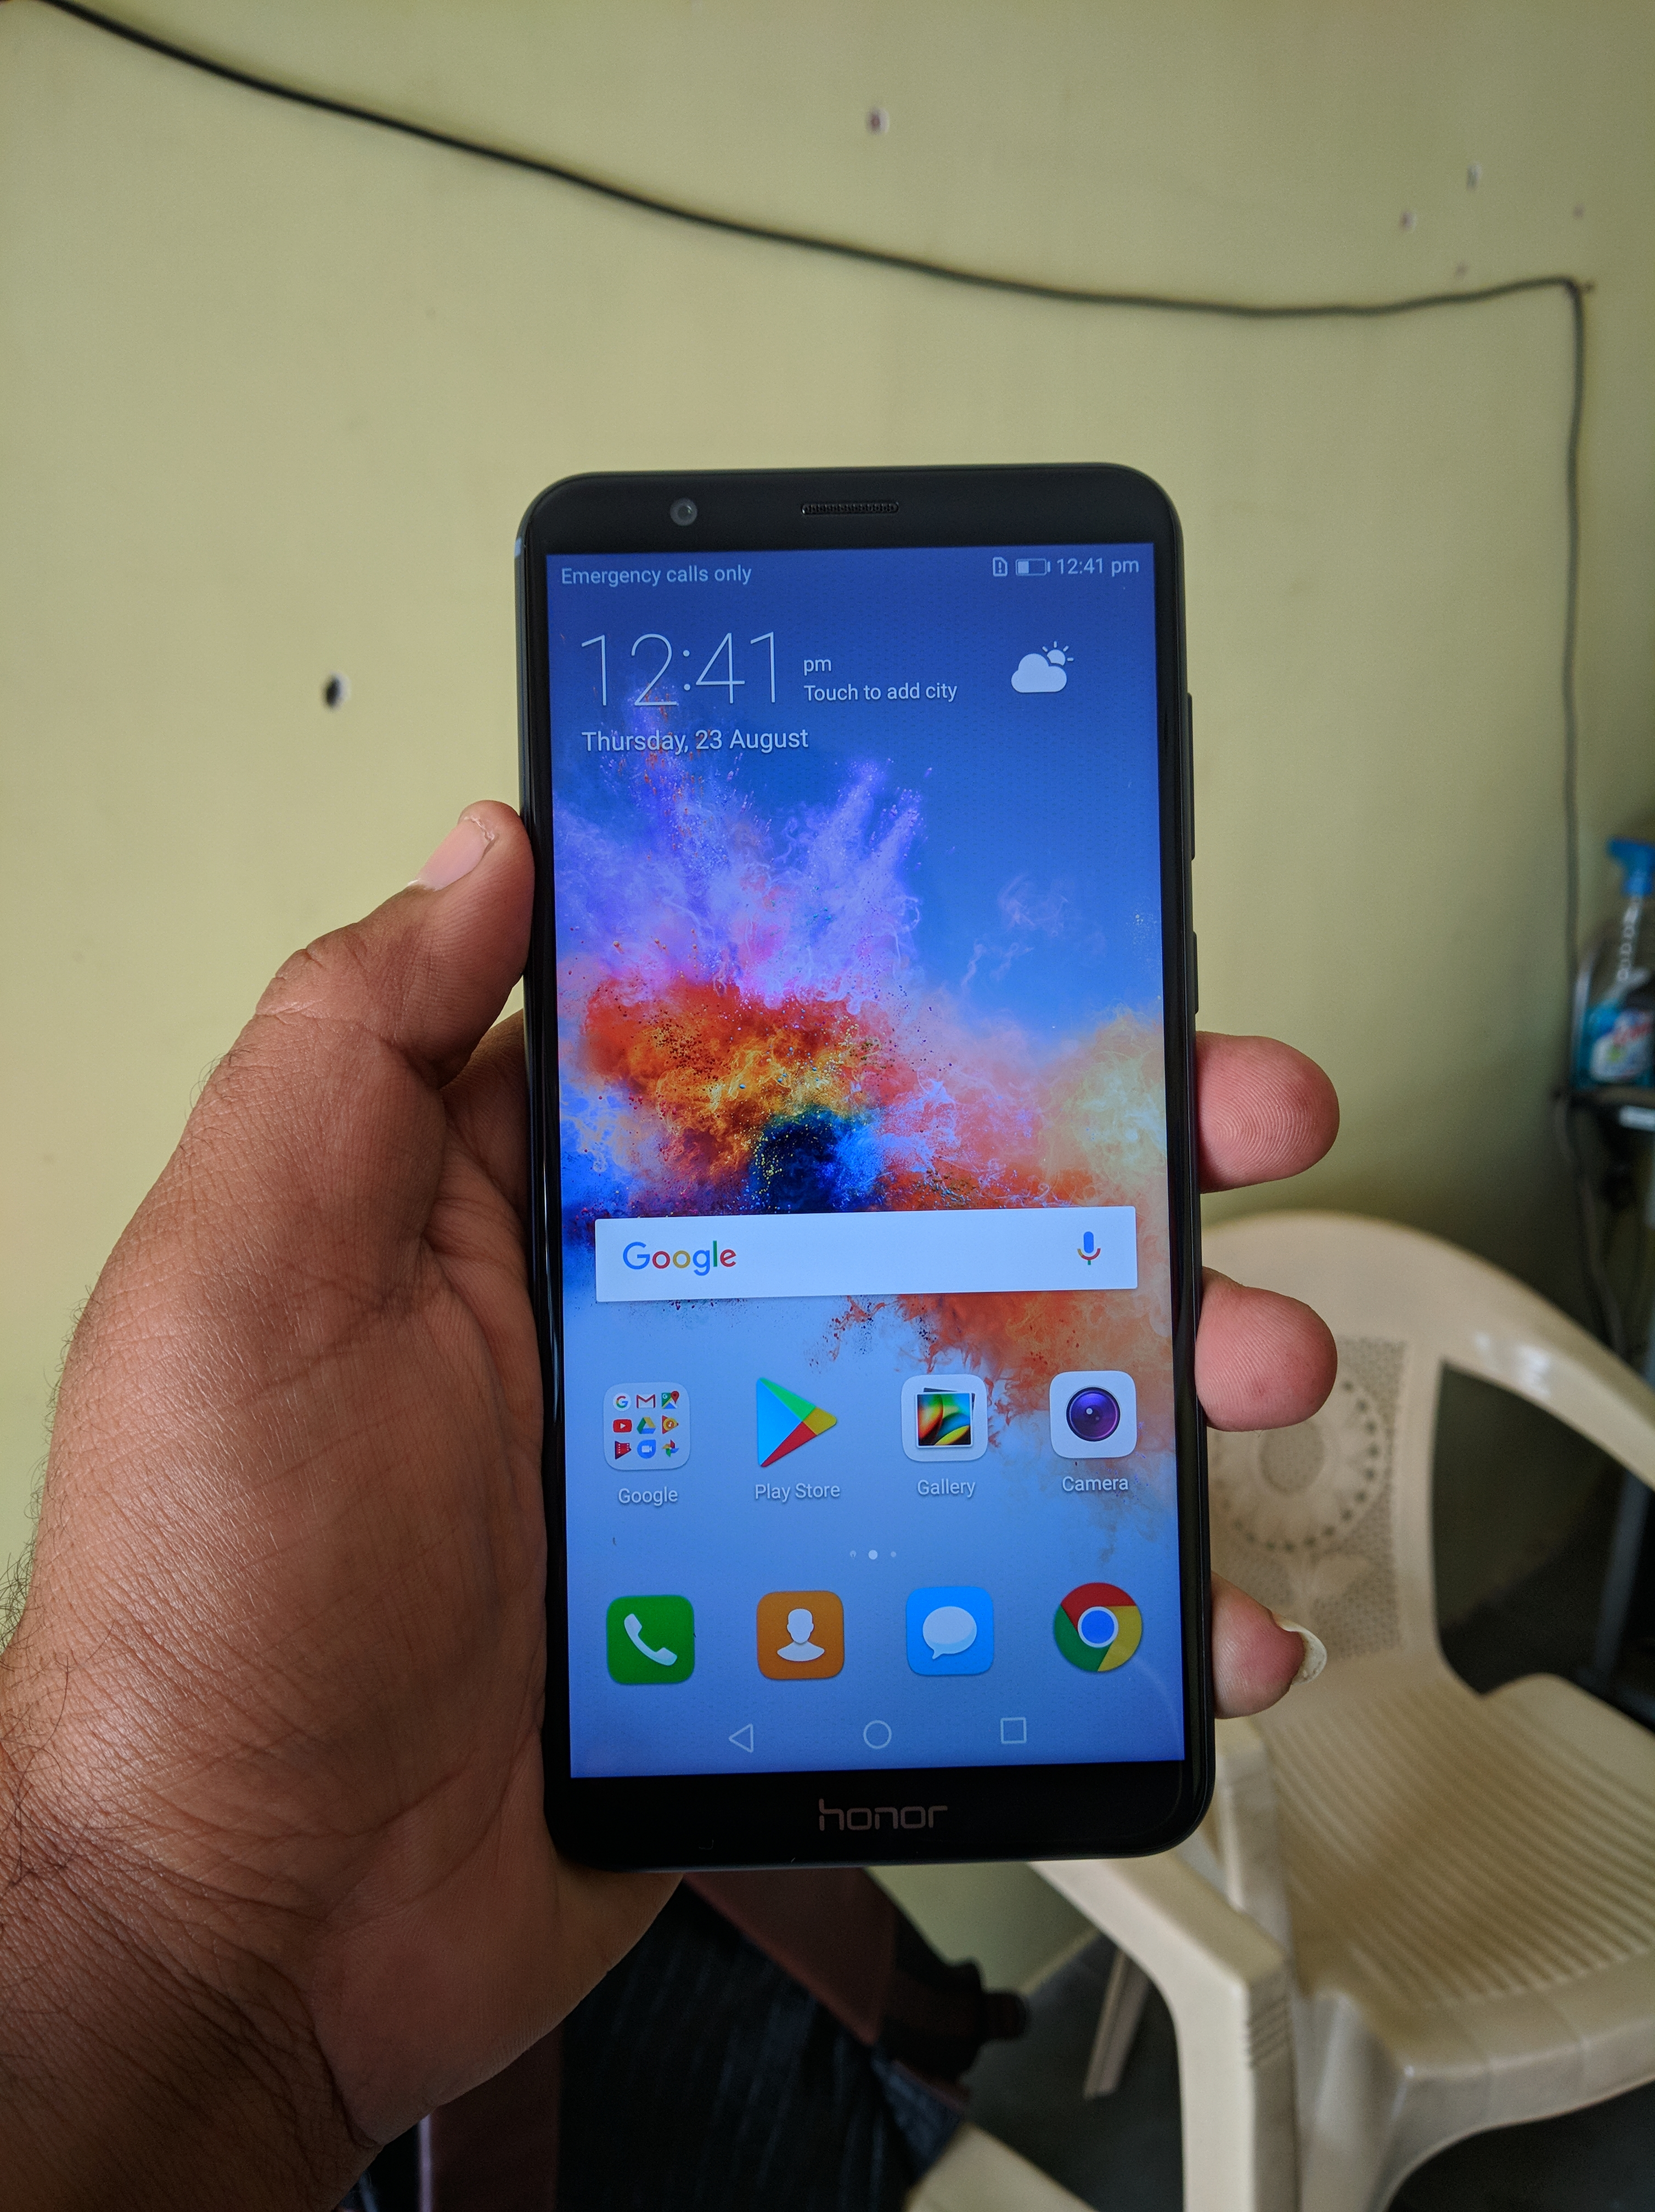 Sold My Honor - OLX MOBILE APP Consumer Review - MouthShut com